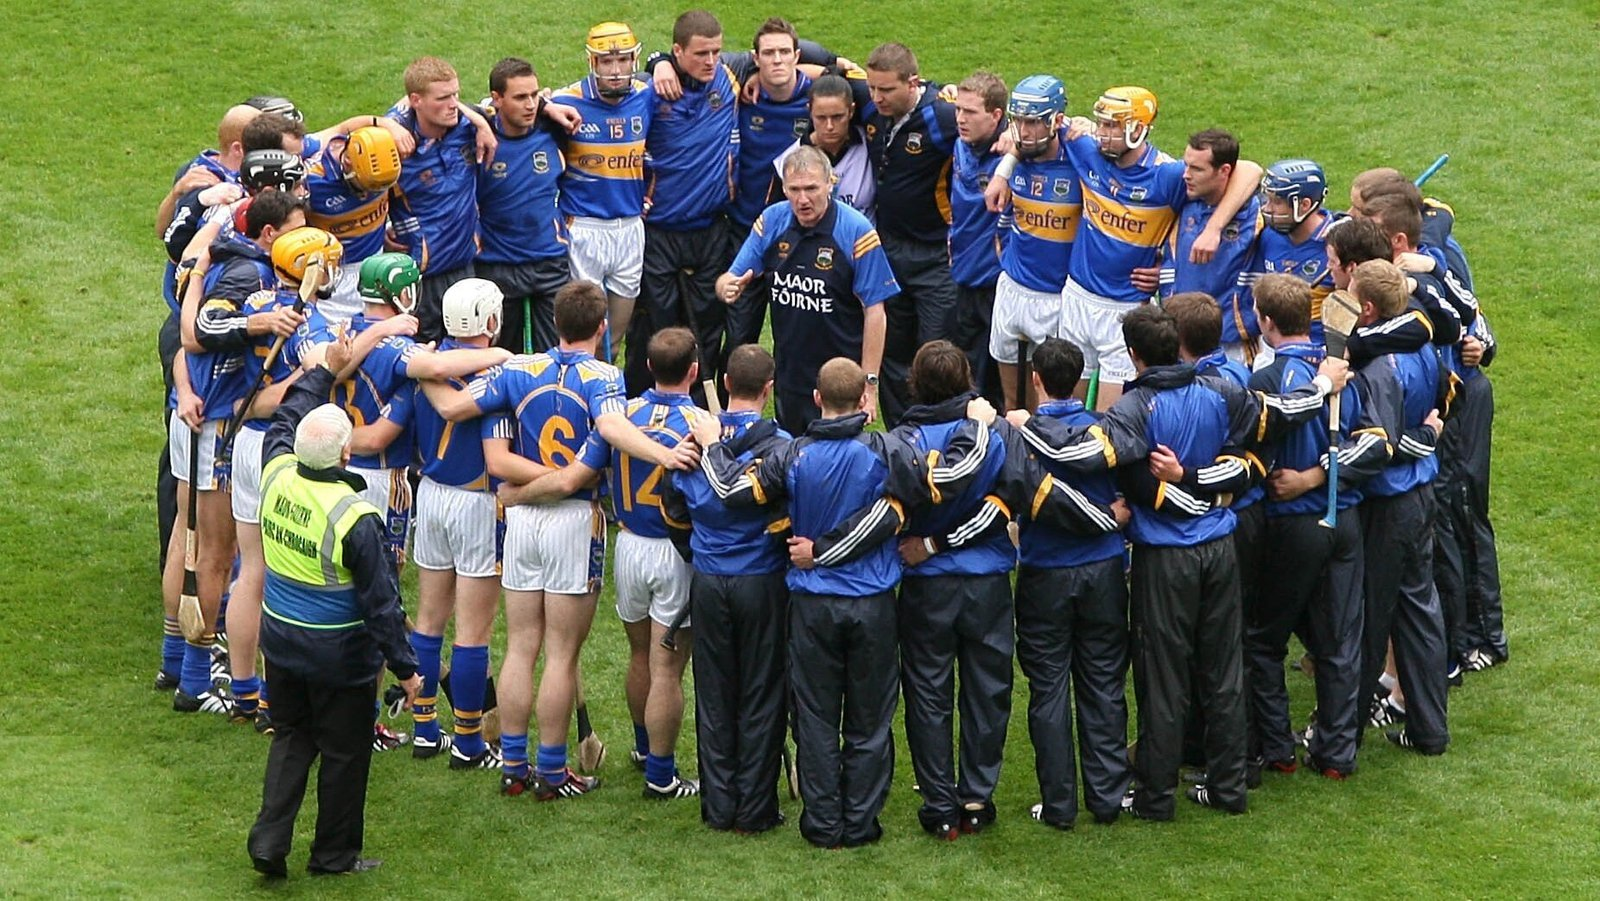 Image - Eamon O'Shea speaks to the Tipp players before the 2009 final